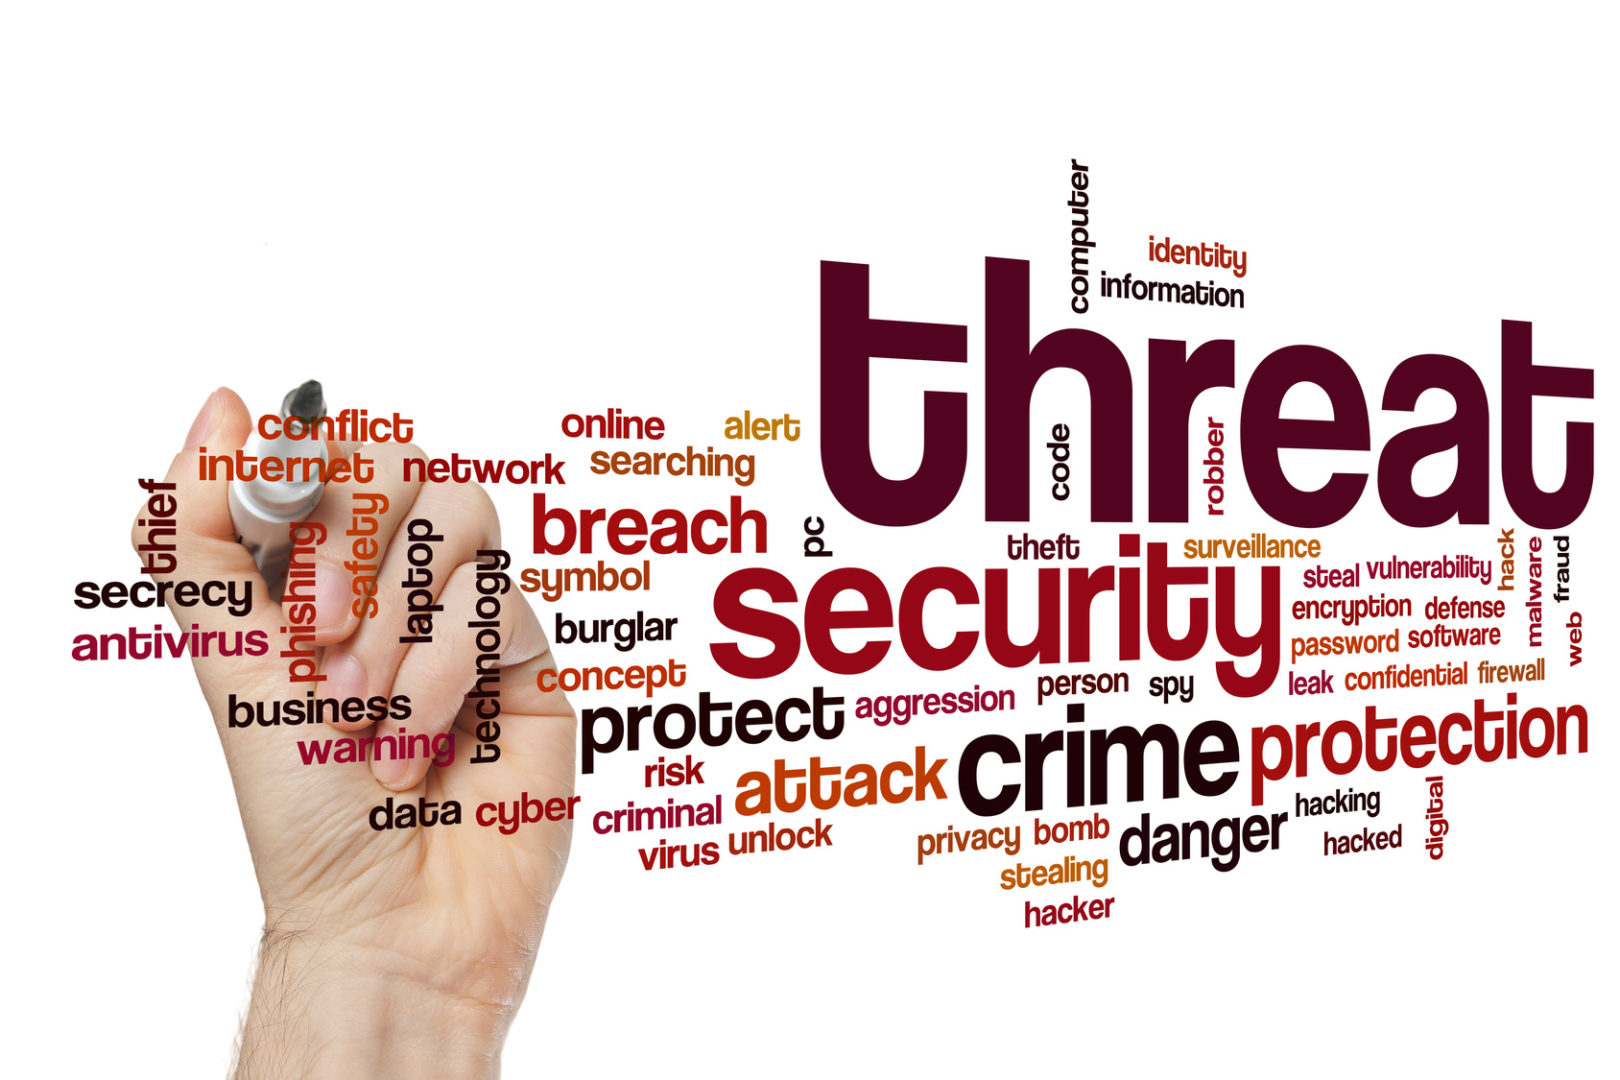 Network Security That Keeps Your Business Safe